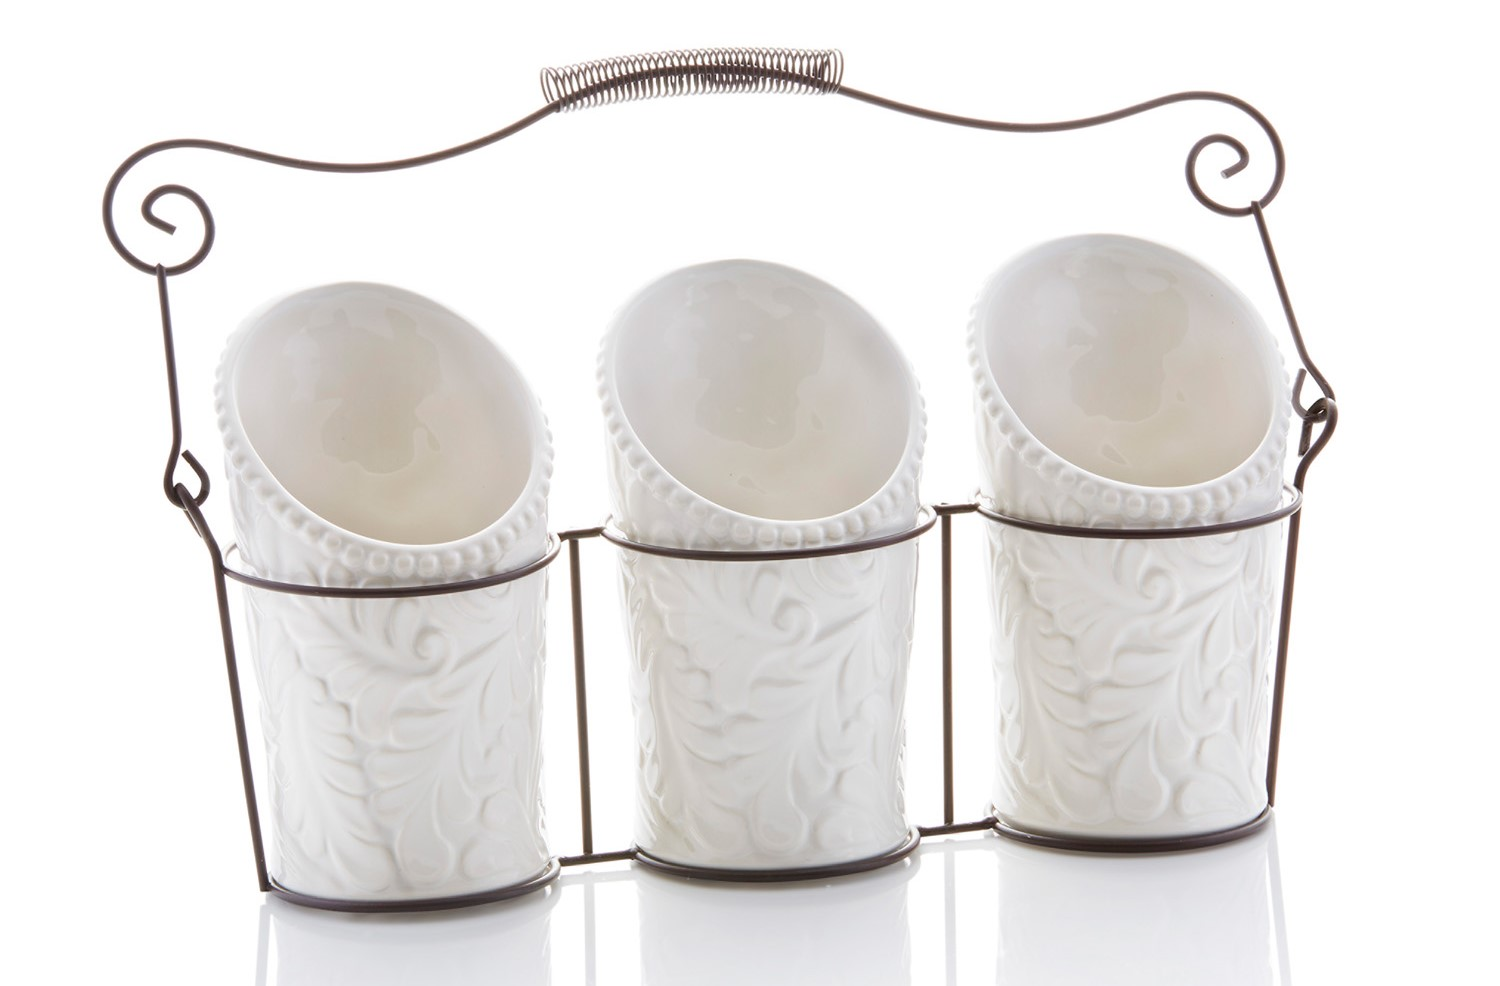 kitchen tool crock nook tables 4 pieces 3 ceramic utensil holders dia x features benefits set of